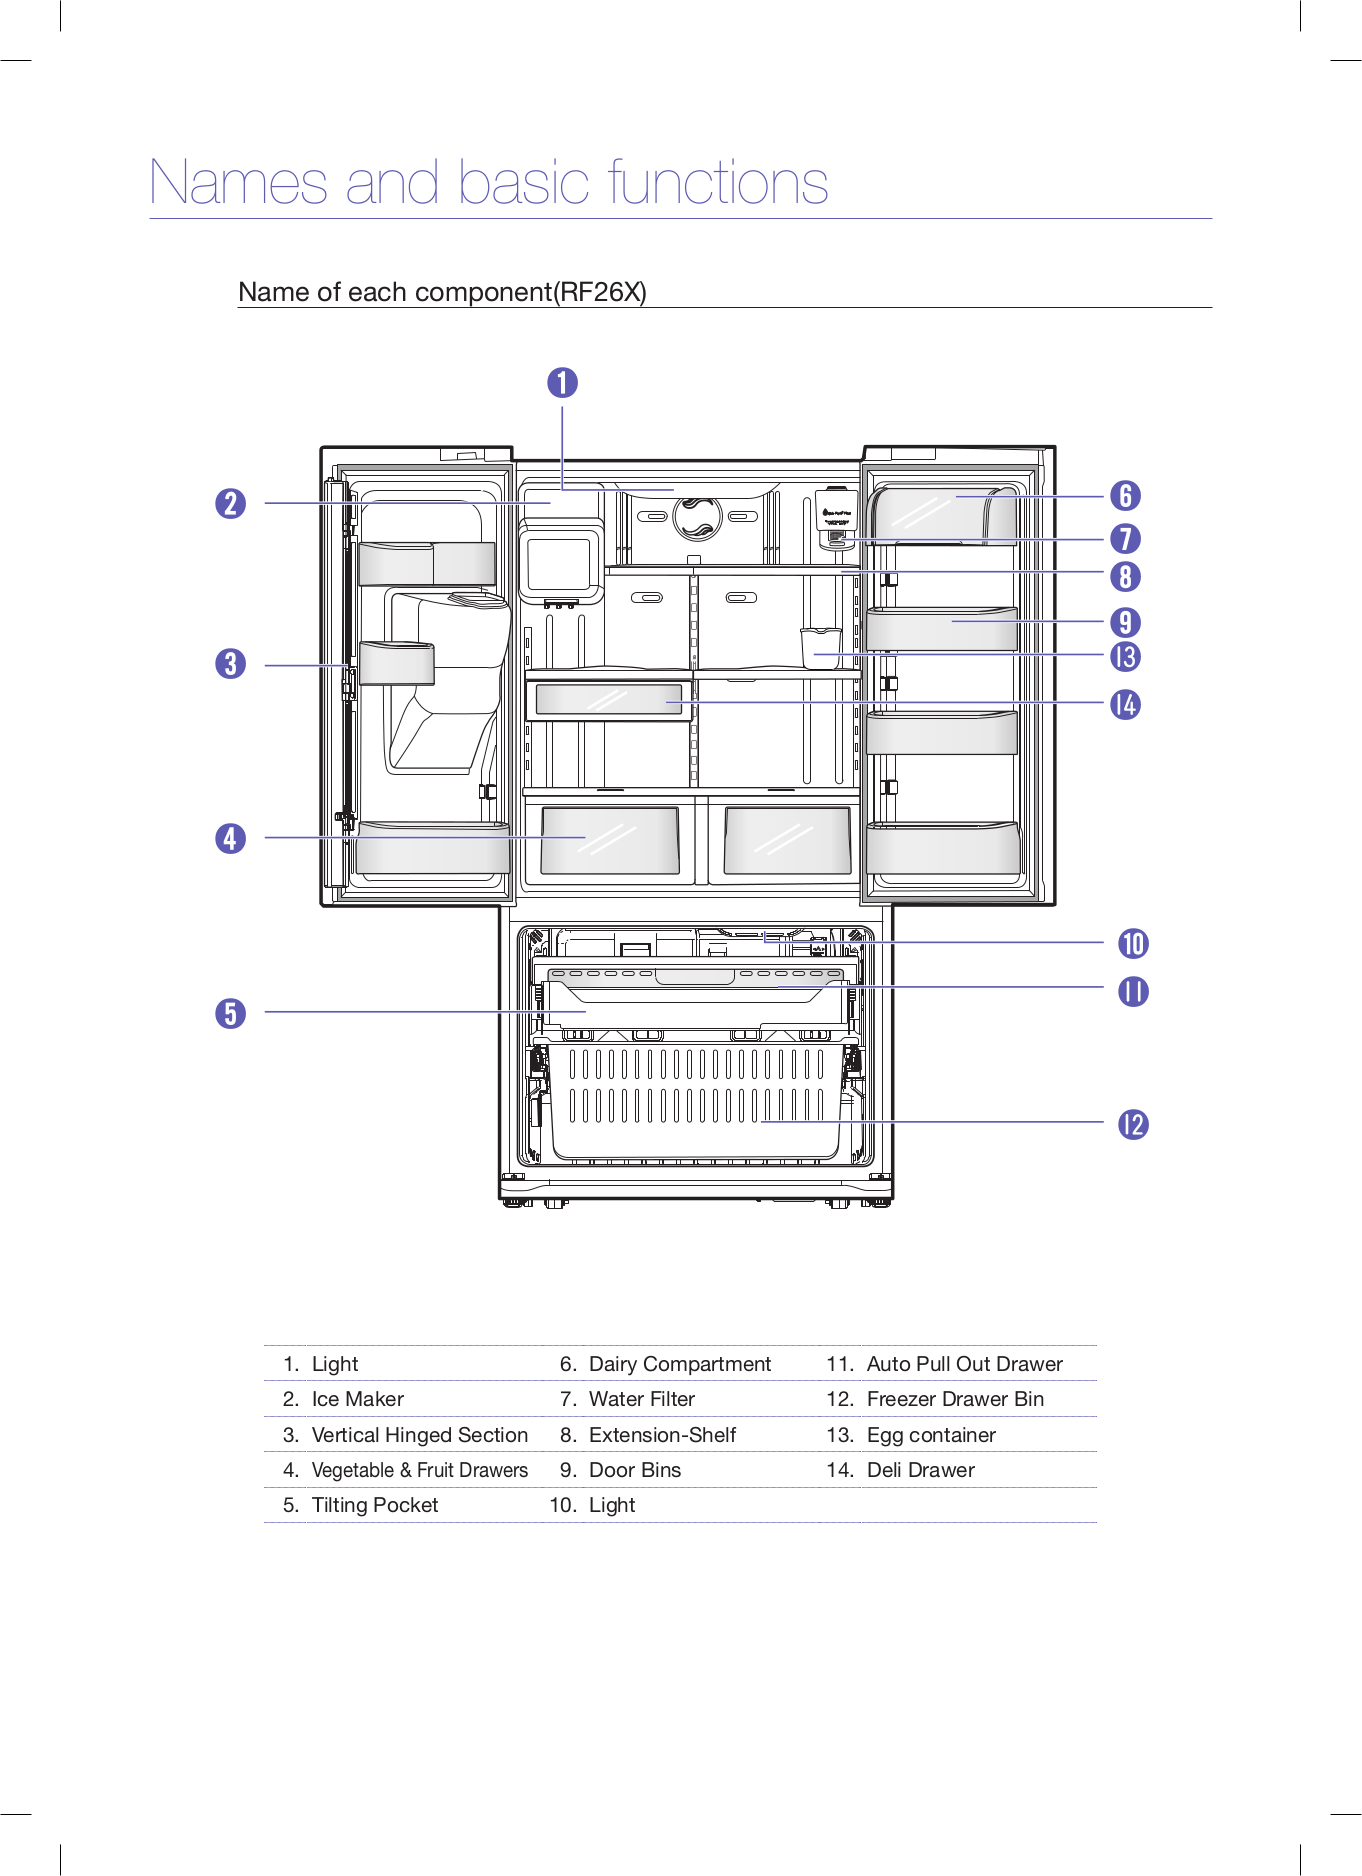 PDF manual for Samsung Refrigerator RF267AERS